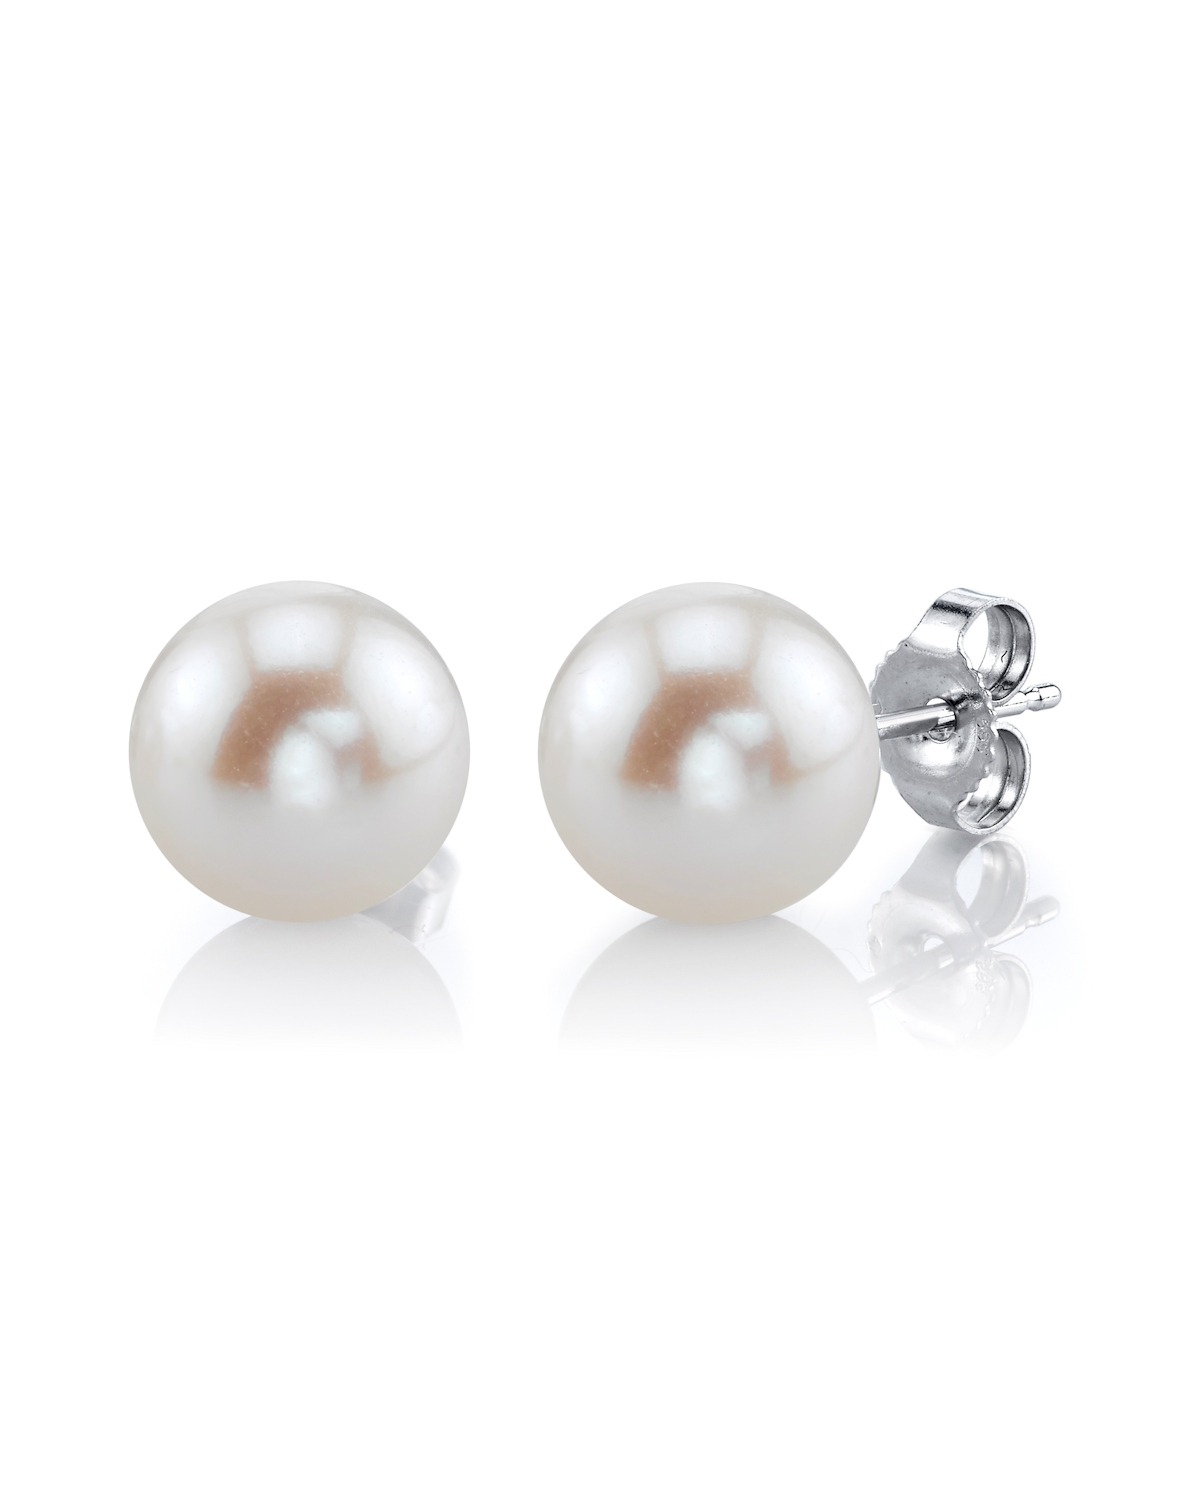 7mm White Freshwater Pearl Stud Earrings - Premiere Quality